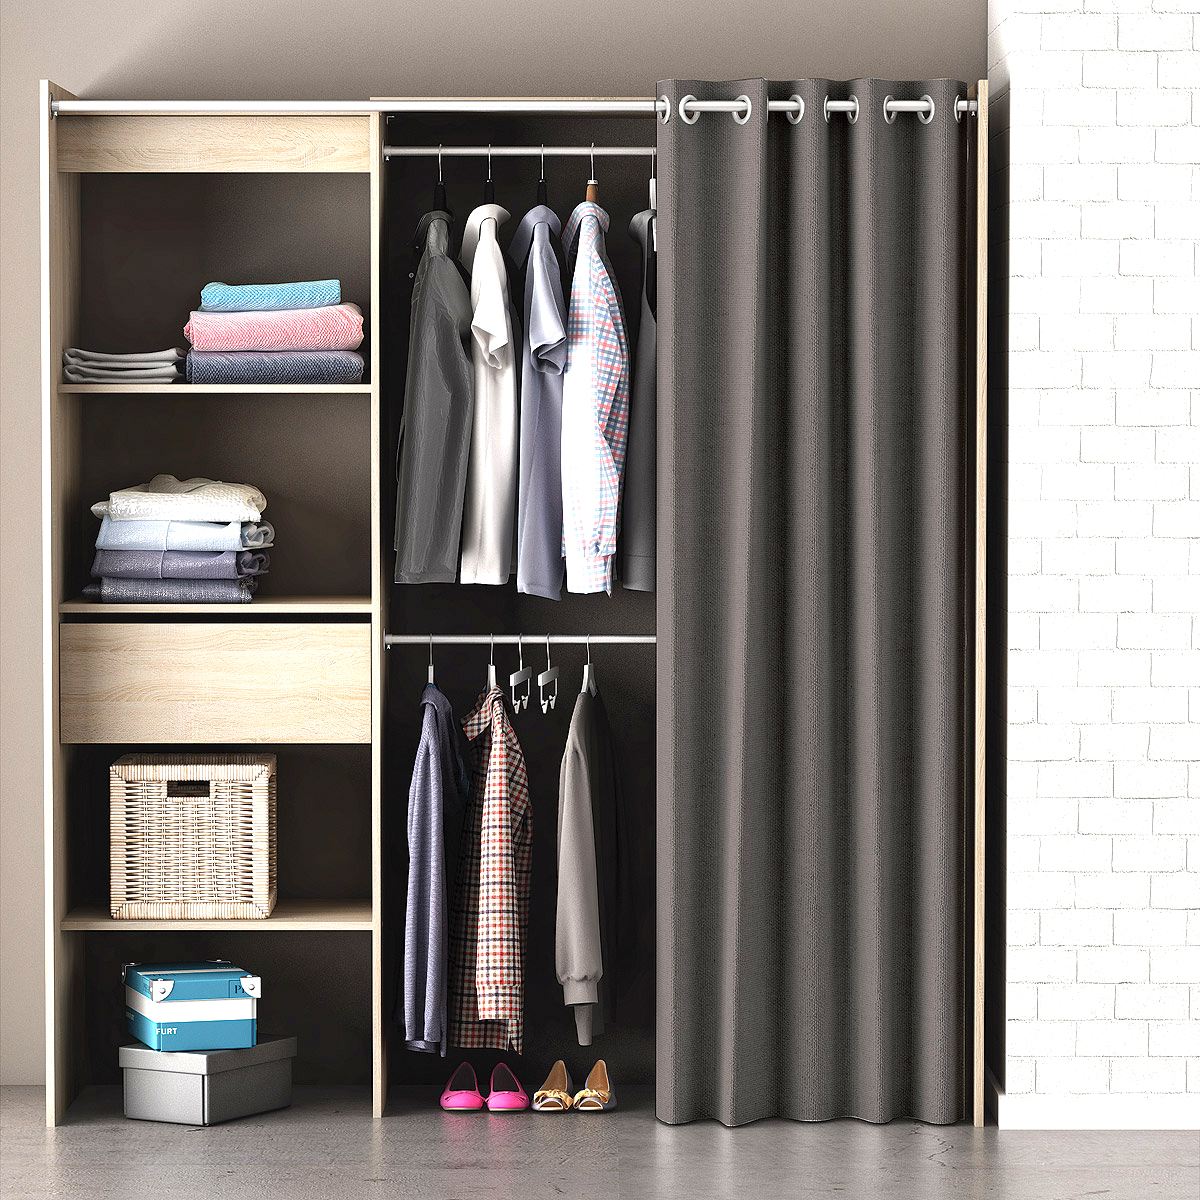 kleiderschrank chicago garderobe regal schrank perle wei vulcano eiche sonoma e ebay. Black Bedroom Furniture Sets. Home Design Ideas